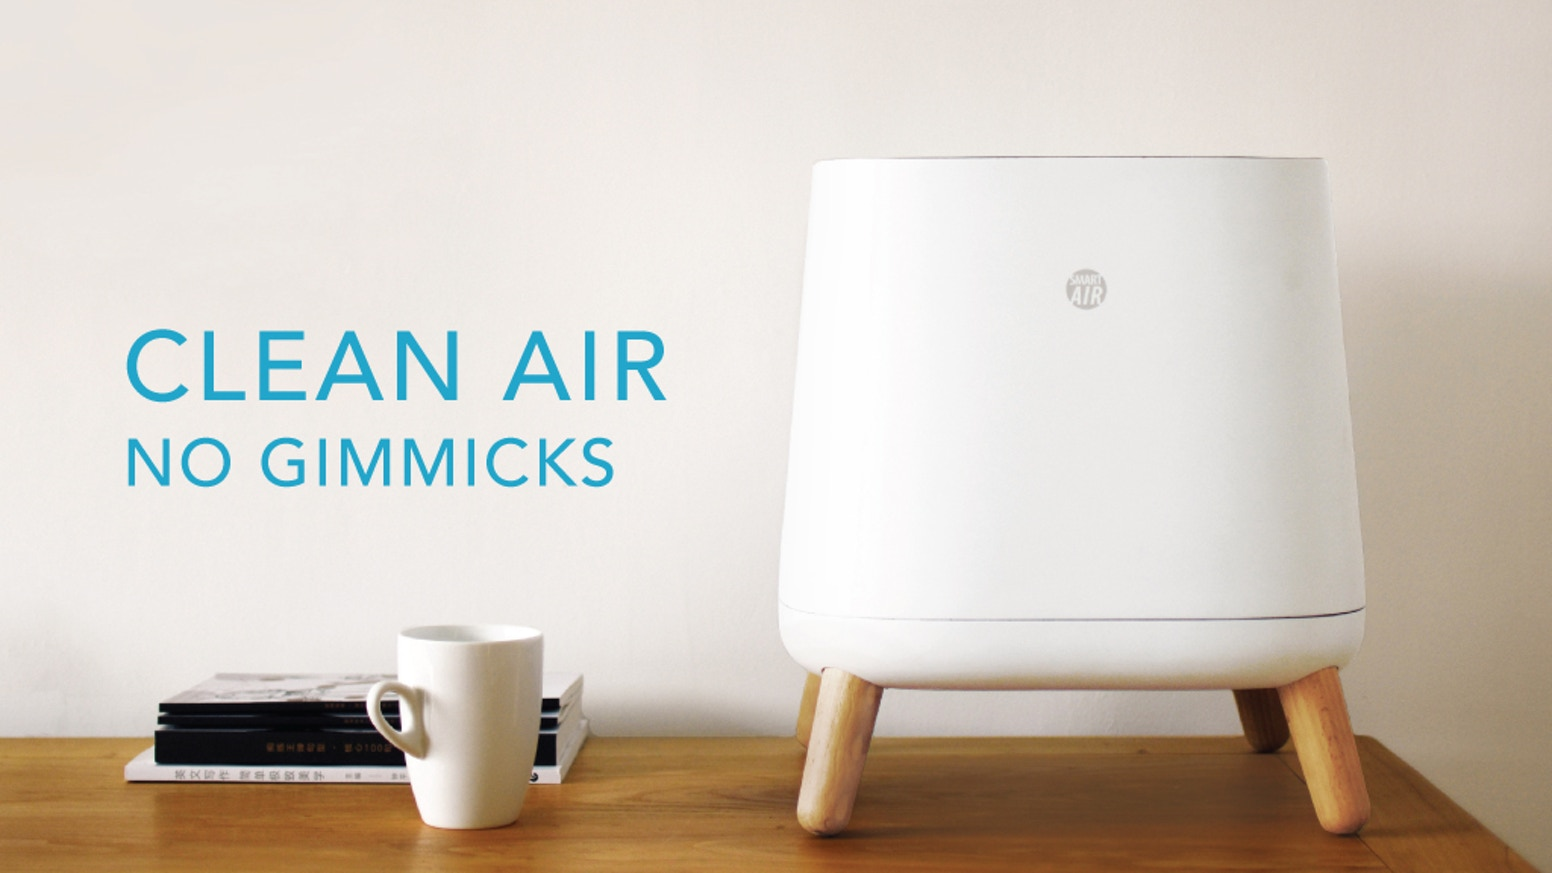 Funded in just 10 days on KICKSTARTER! The Sqair is THE air purifier for EVERYONE. Forget the marketing hype from big purifier companies, get no-nonsense clean air for around $100 today.